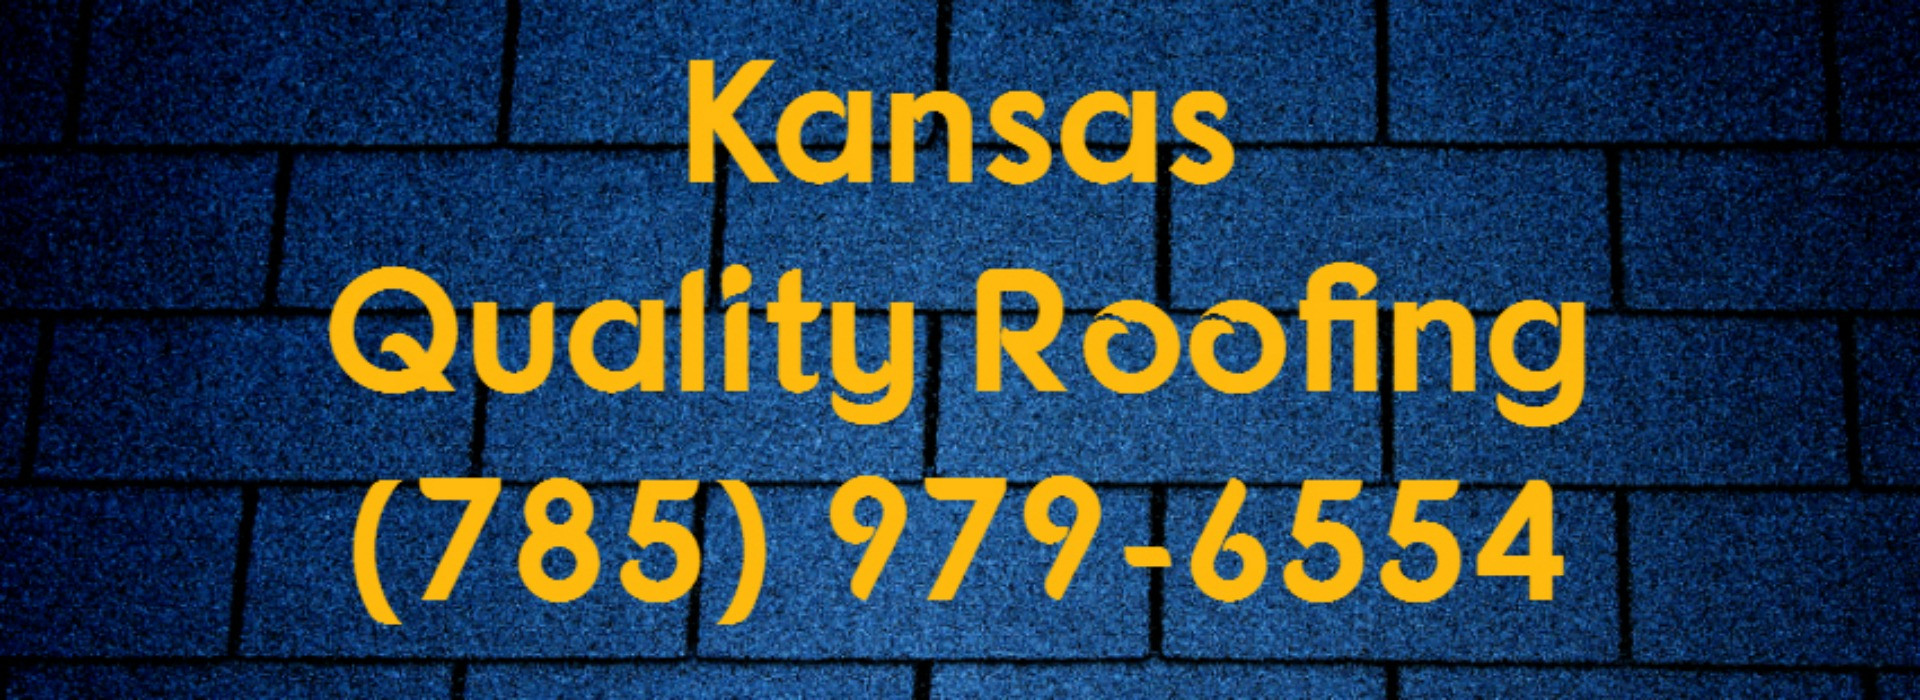 Kansas Quality Roofing Lawrence Topeka Joco